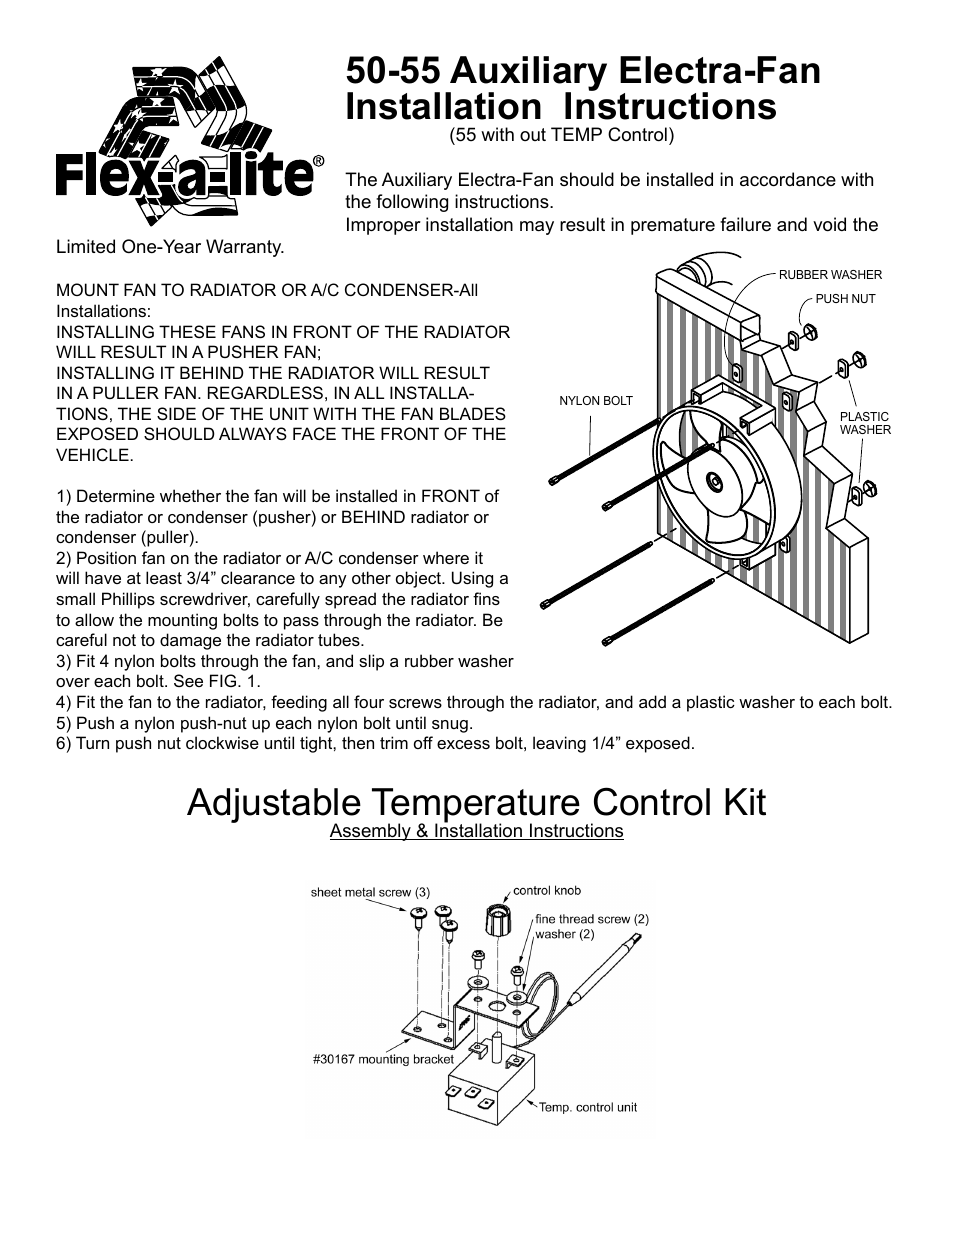 Flex-a-Lite 55 Auxiliary Electra-Fan User Manual | 2 pages | Also for: 50  Auxiliary Electra-Fan